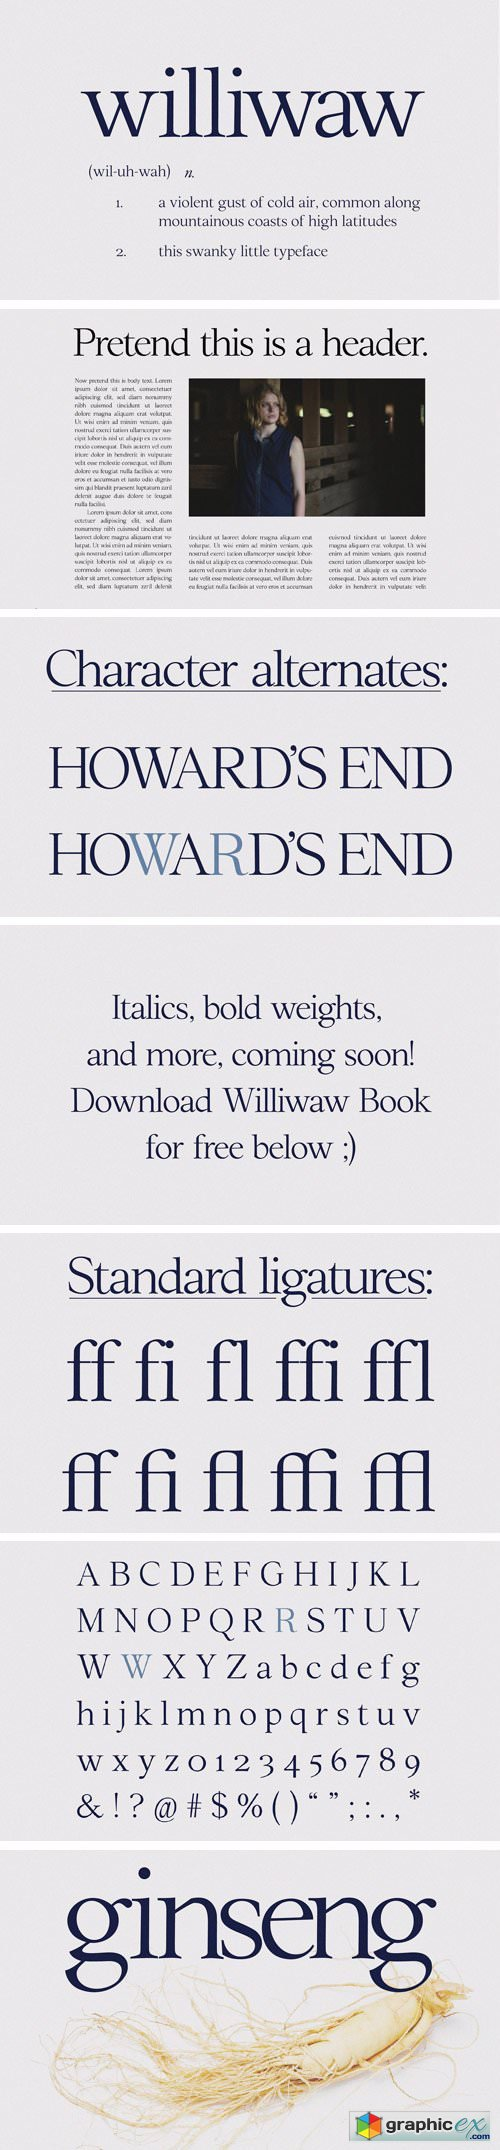 Williwaw Book Typeface